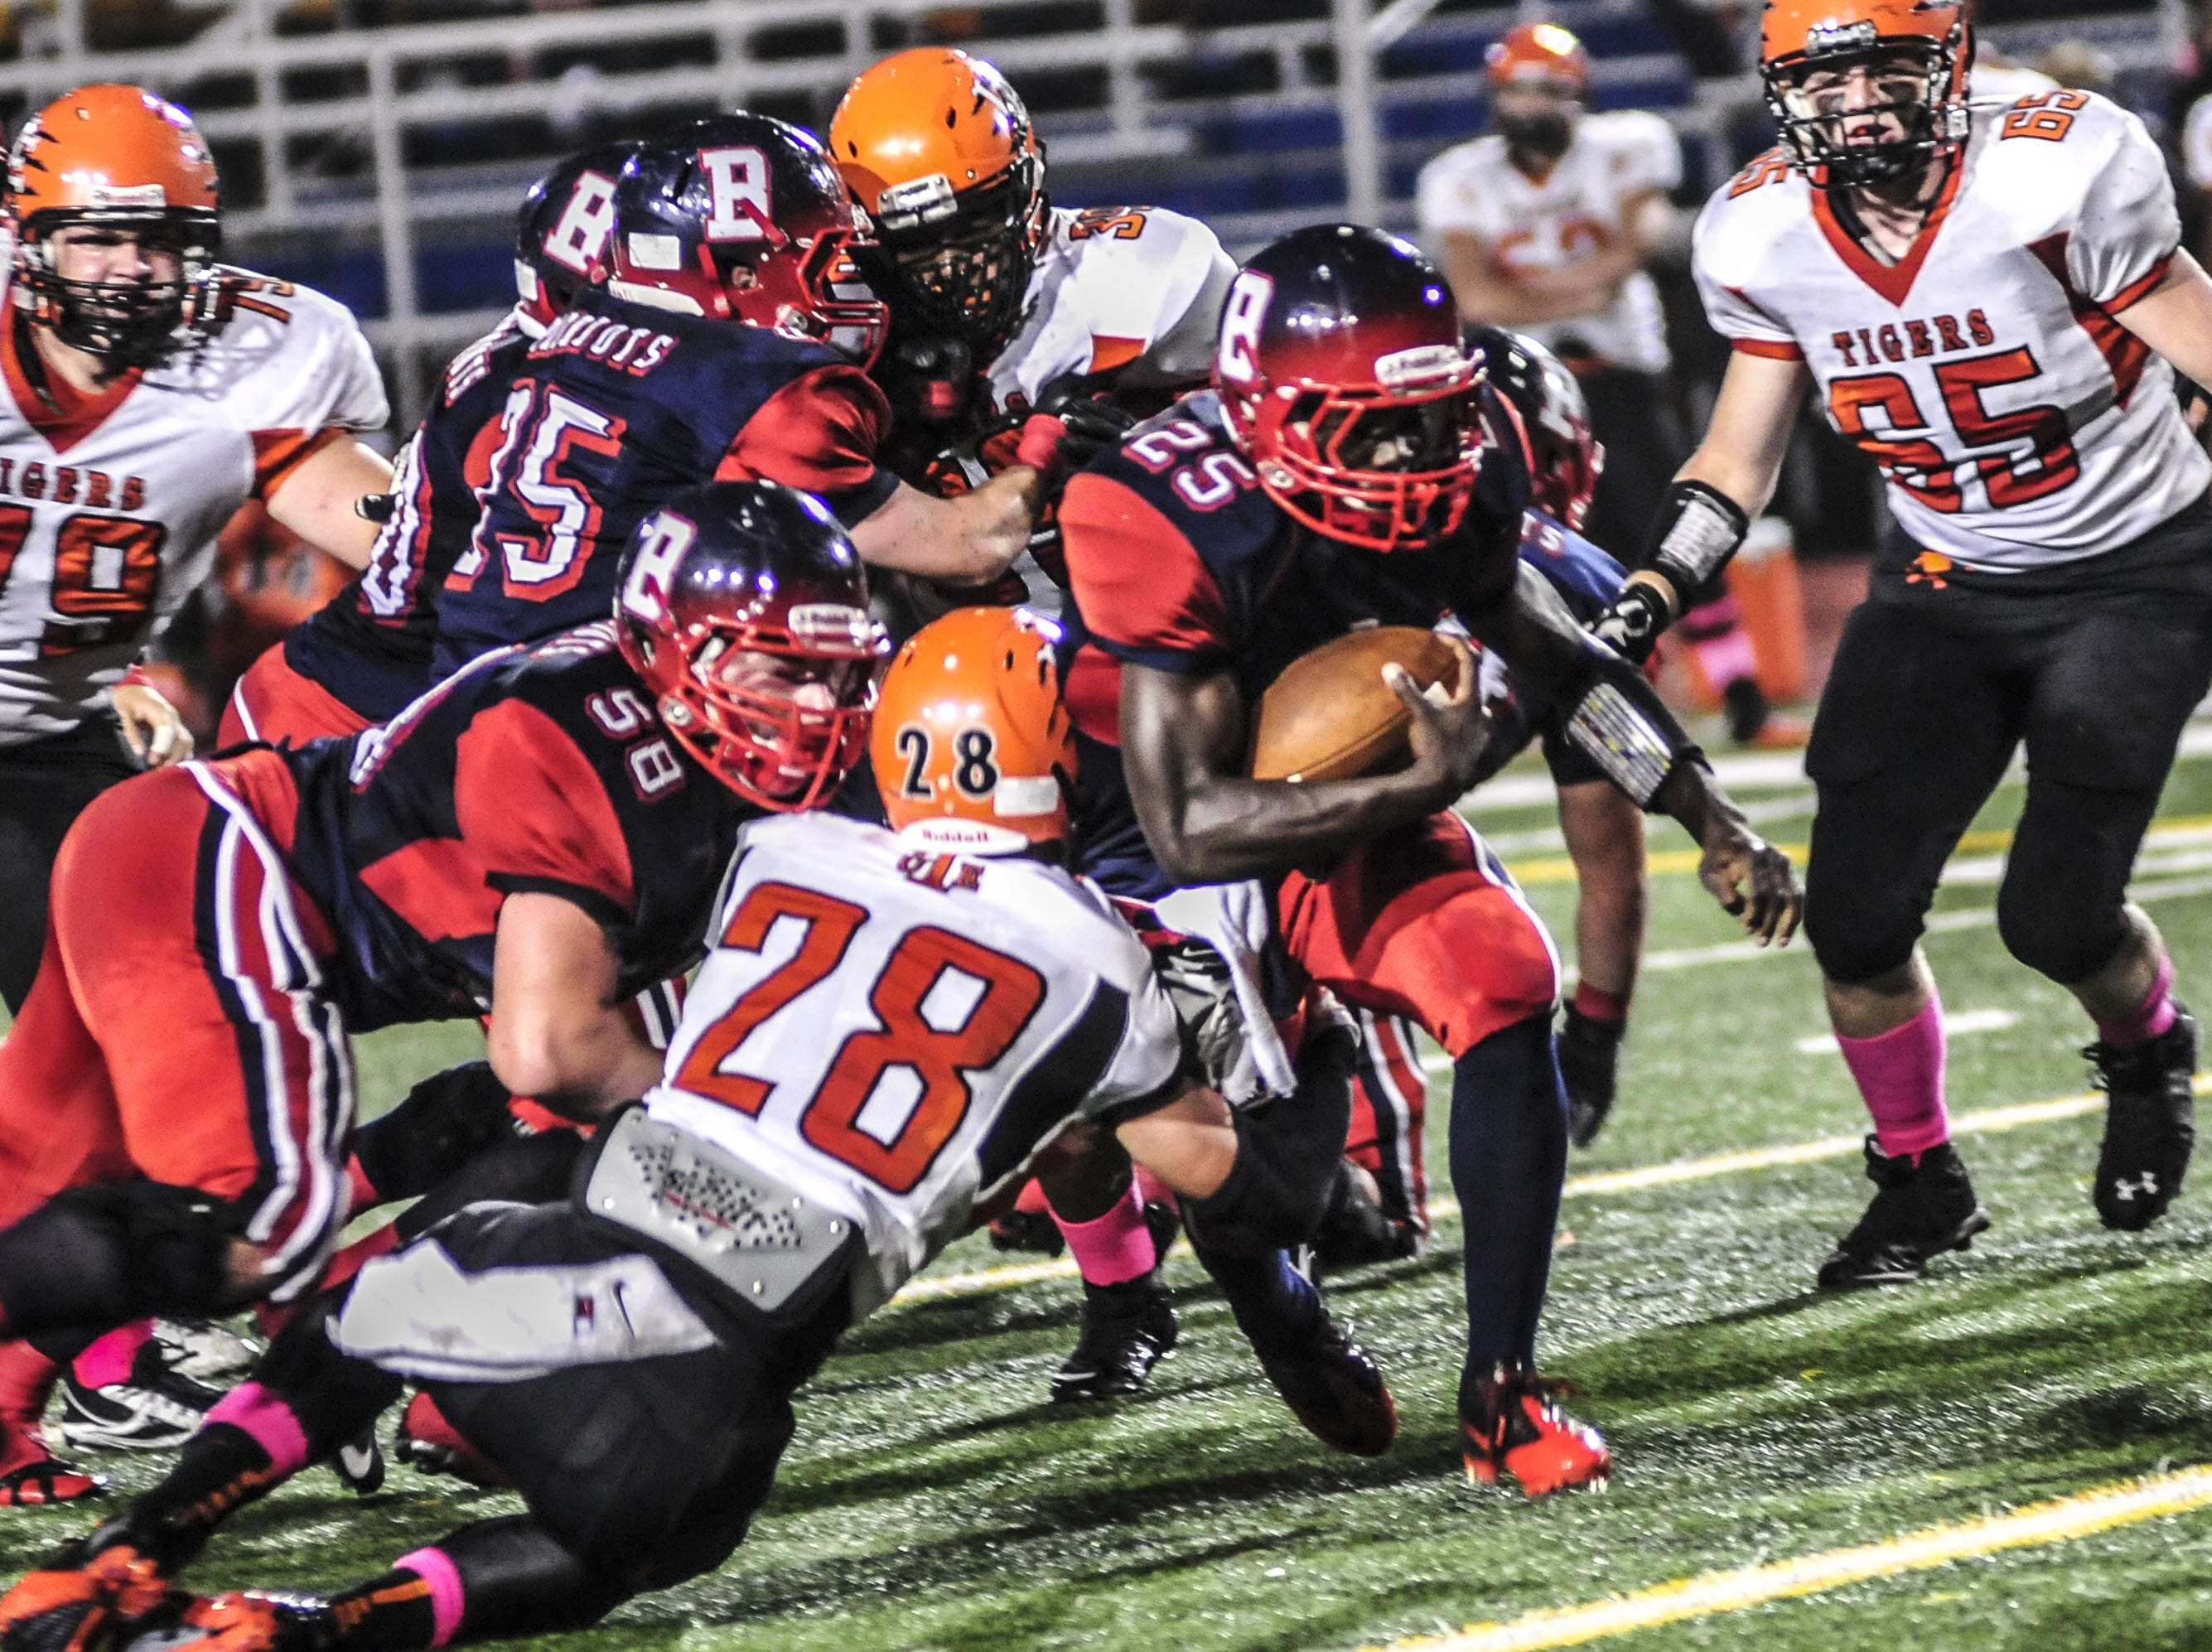 Binghamton running back Amman Weaver gets a first down against Union-Endicott during a 2013 game.